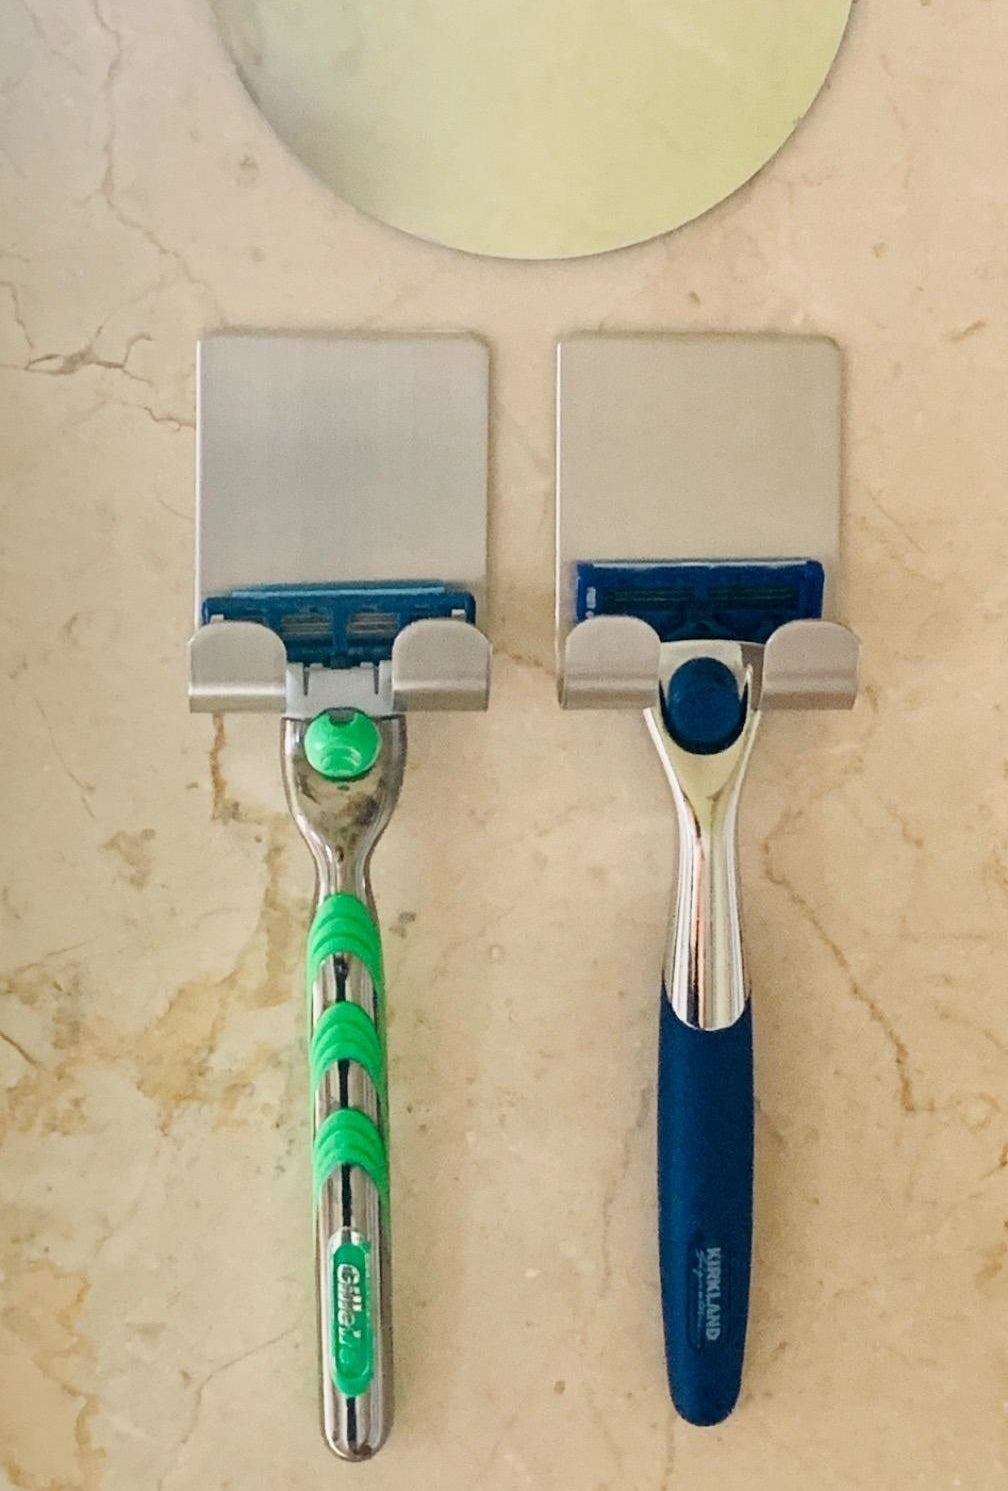 Two razors hanging on the silver razor holders